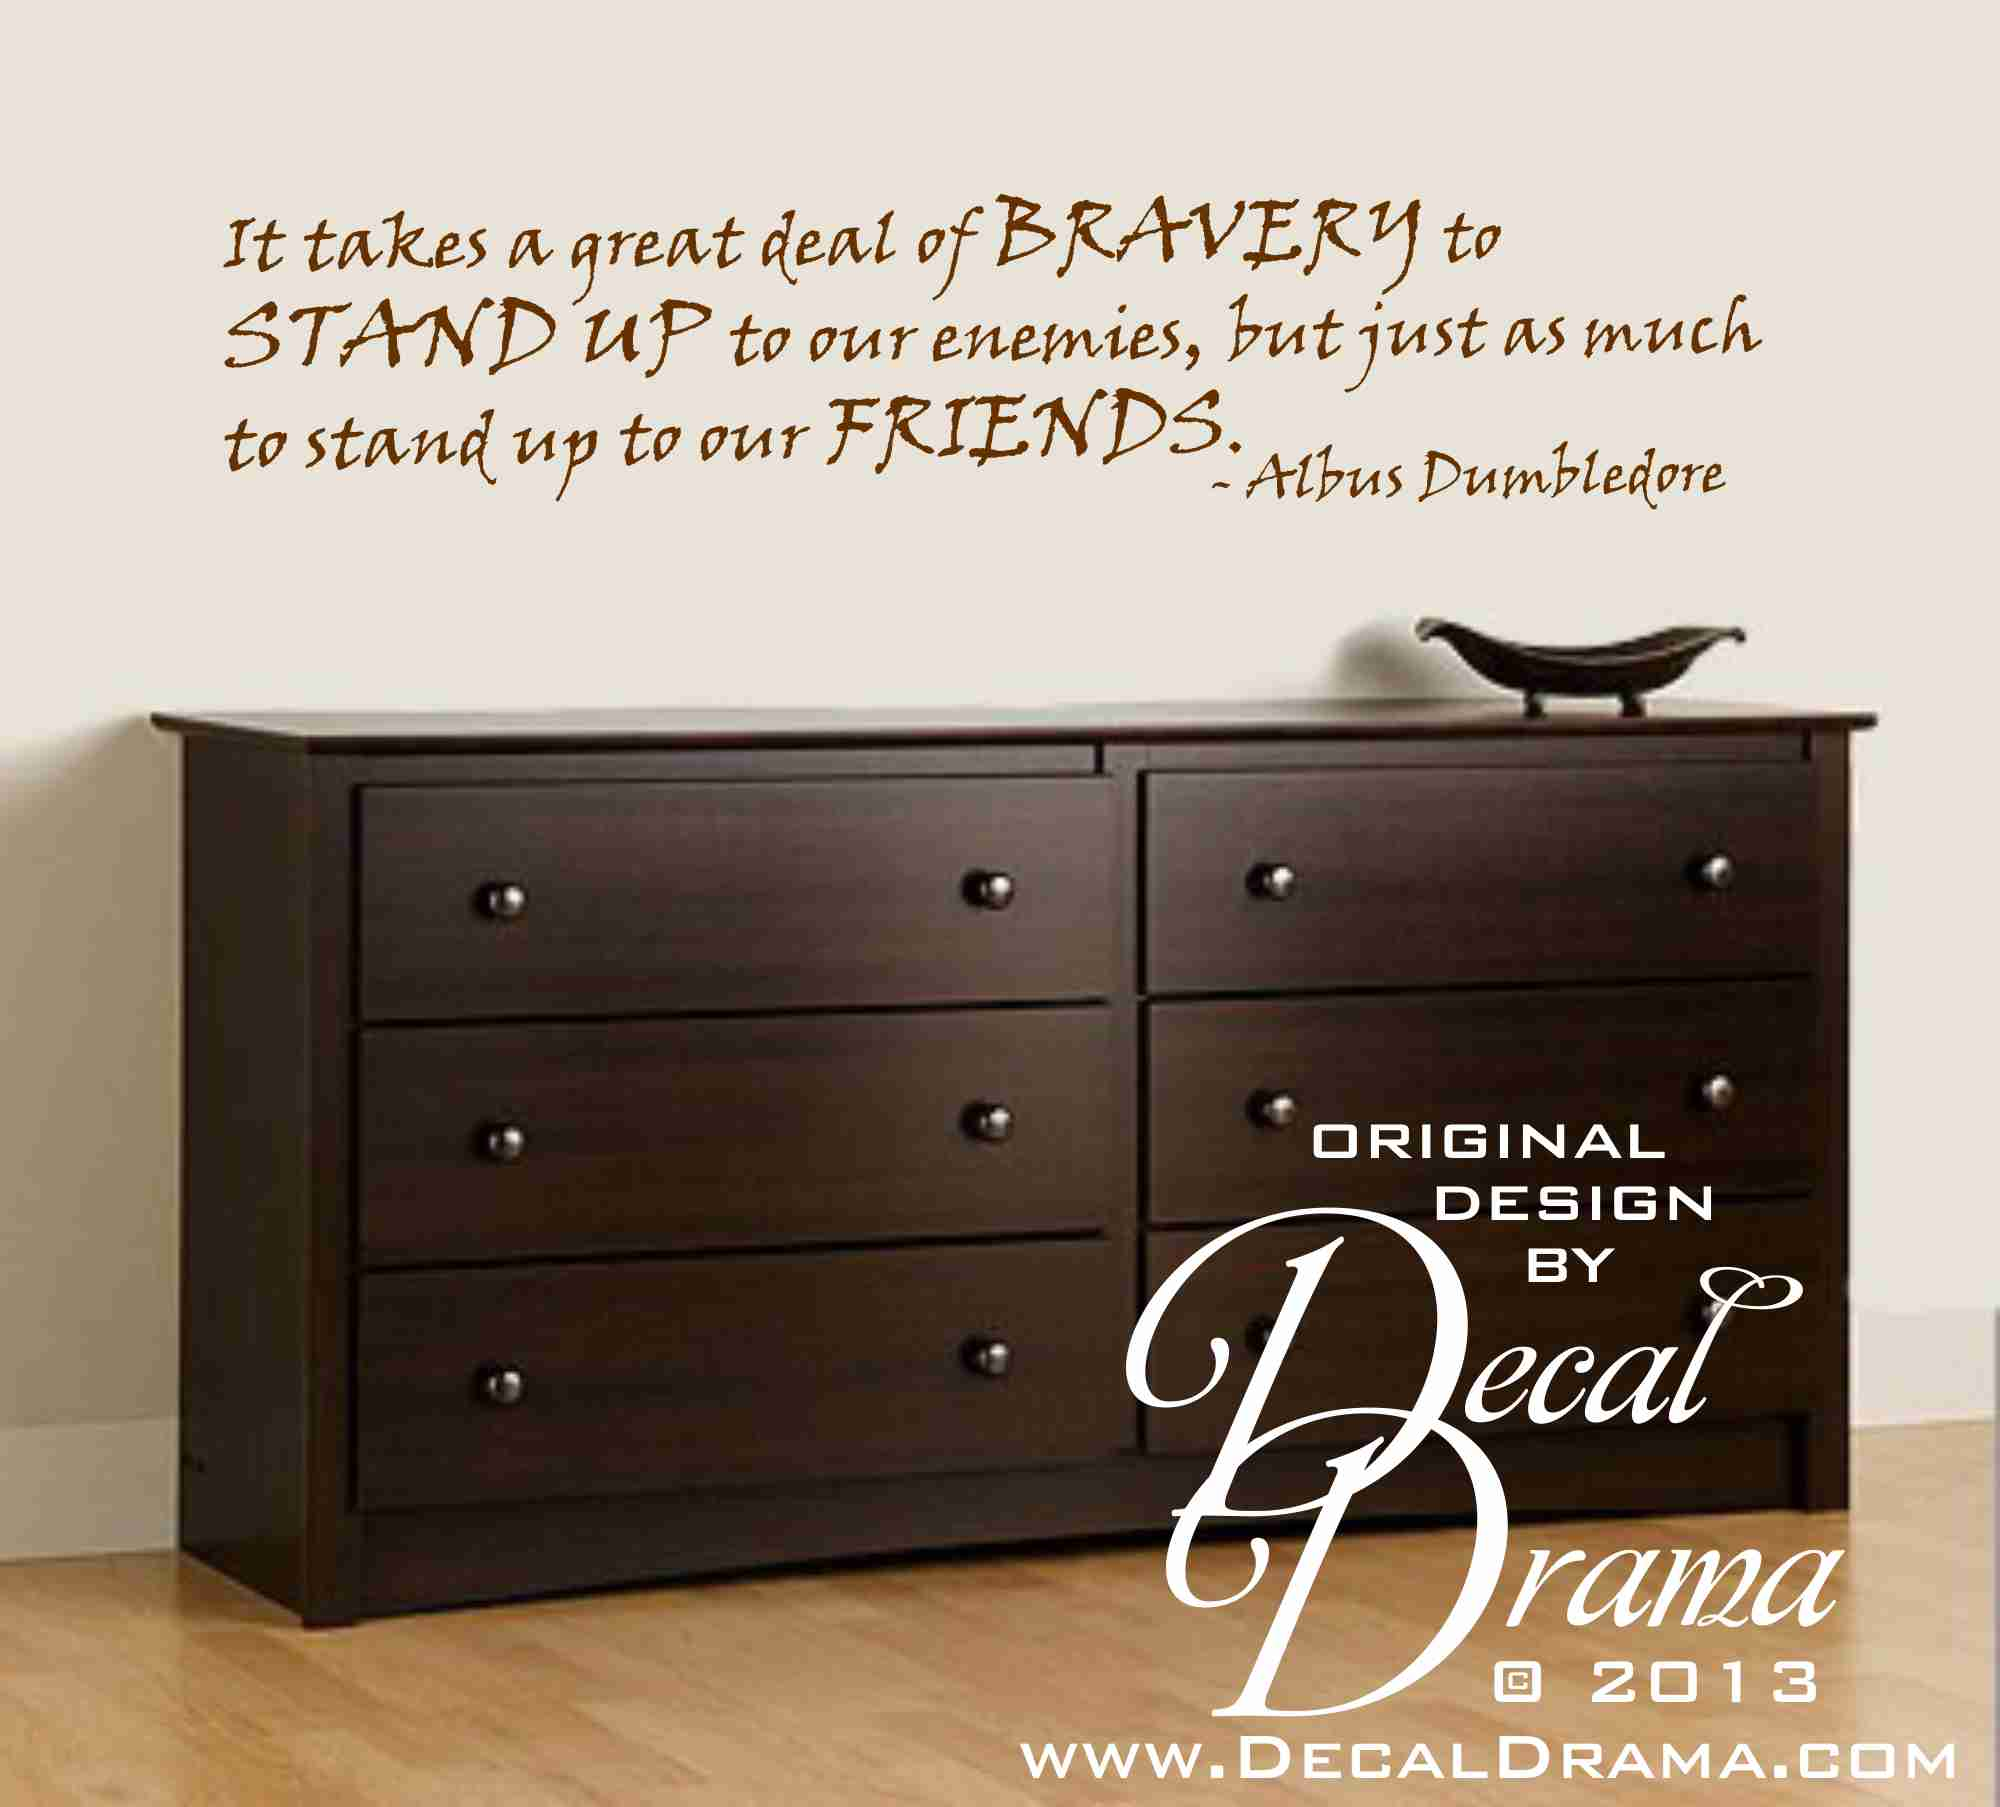 It Takes a Great Deal of Bravery to Stand Up Vinyl Wall Decal & Decal Drama · It Takes a Great Deal of Bravery to Stand Up Vinyl ...